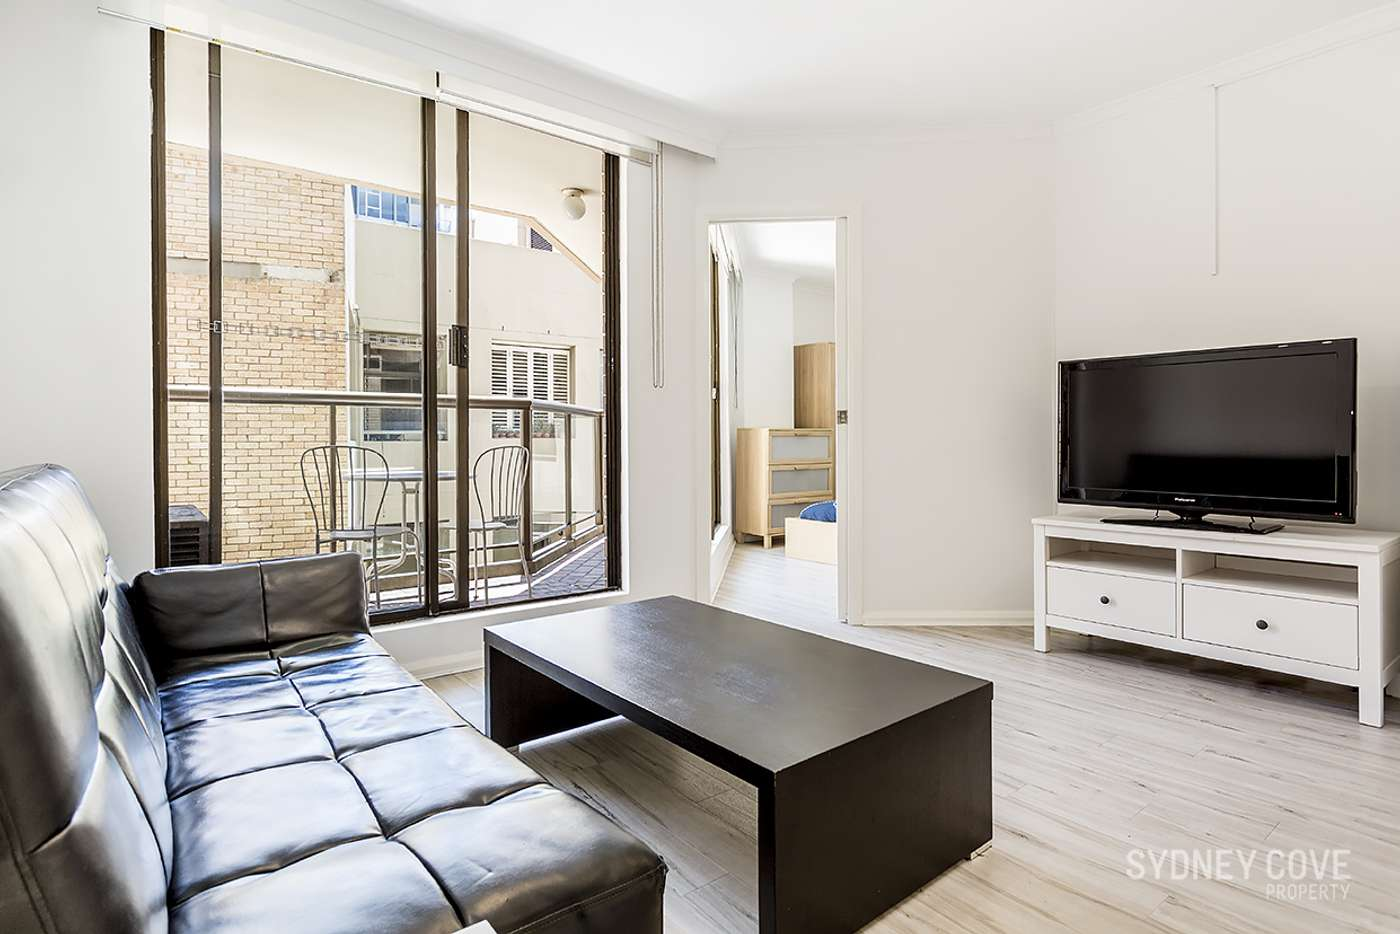 Main view of Homely apartment listing, 220 Goulburn St, Sydney NSW 2000